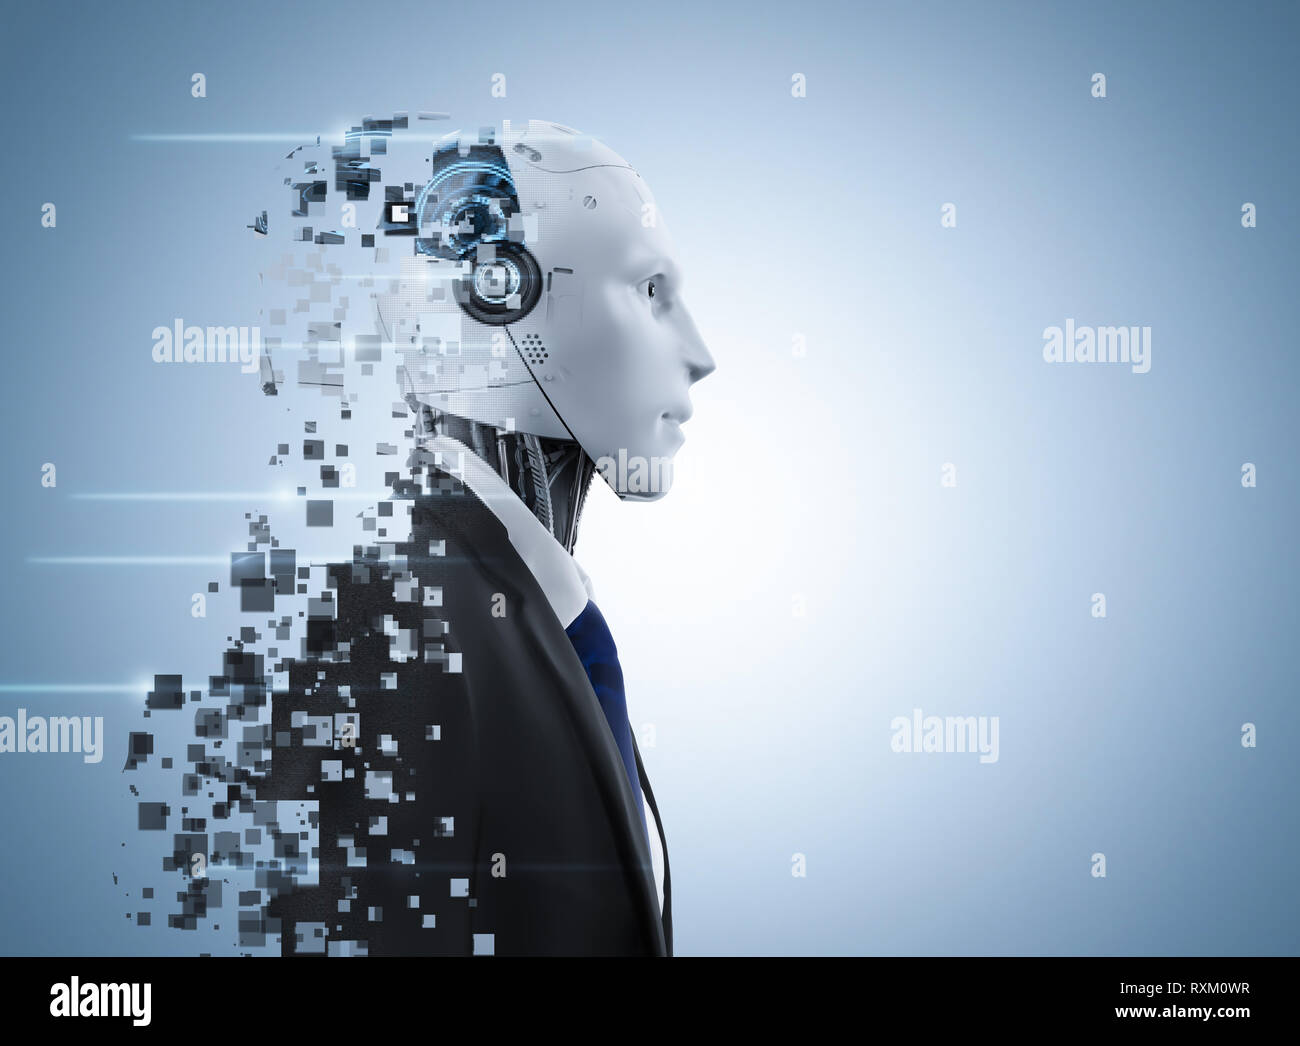 3d rendering ai robot explosion with pixelated effect Stock Photo